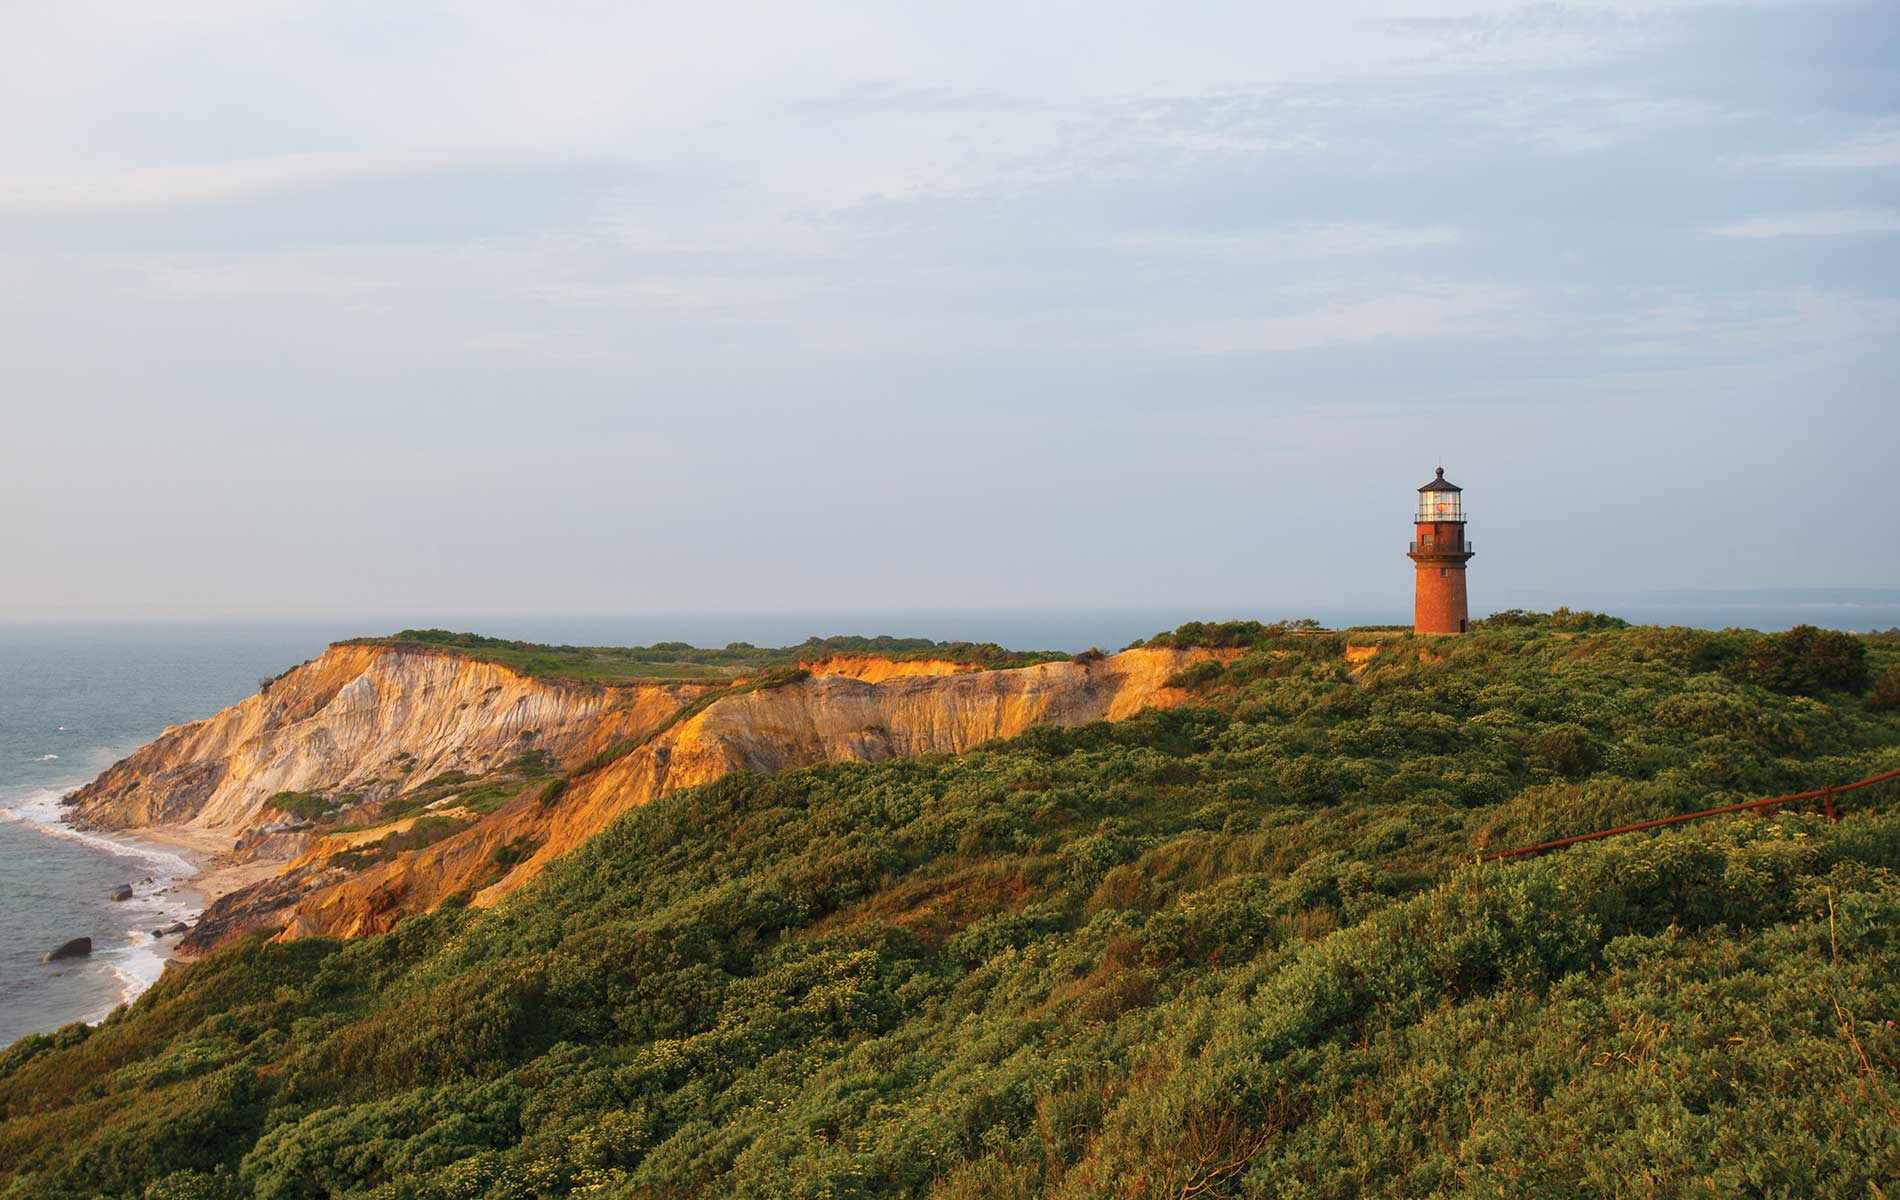 Cape Cod, Massachusetts, Gay Head Cliffs, Lighthouse, Aquinnah Beach, Martha's Vineyard